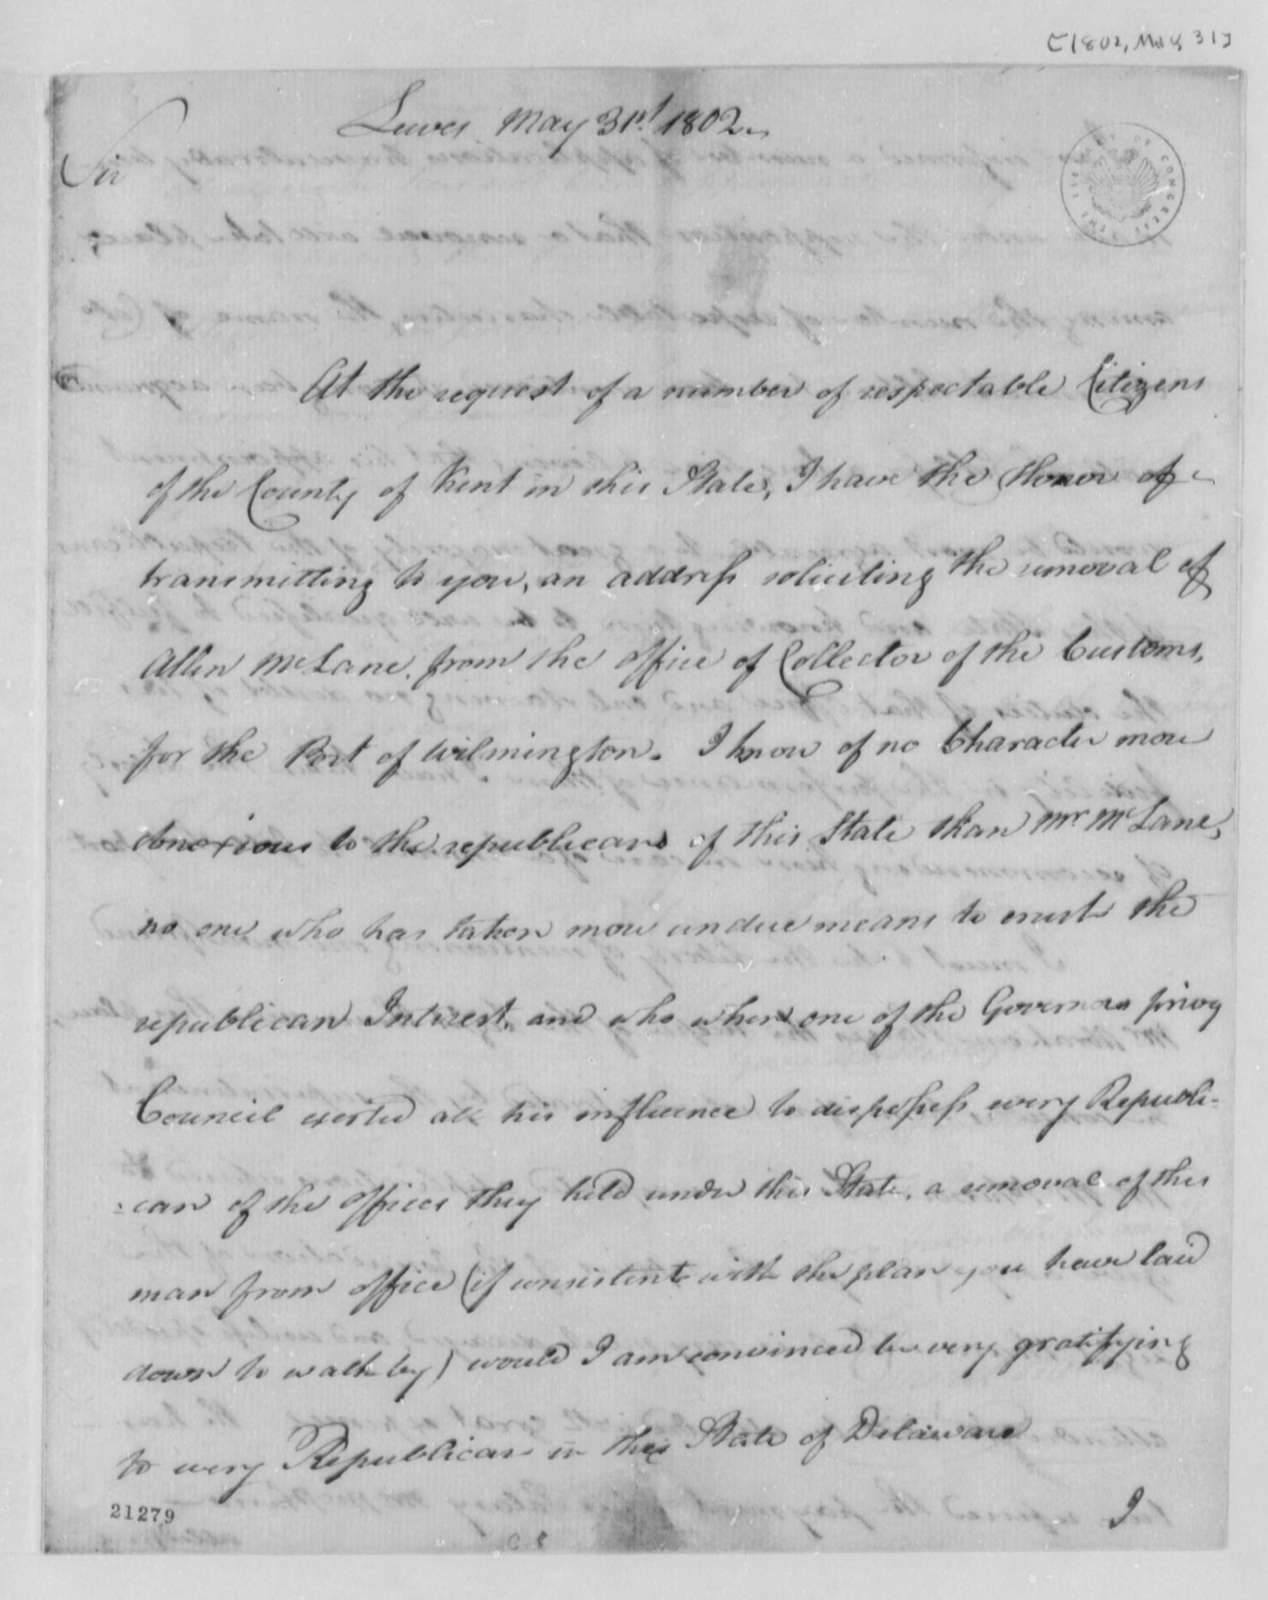 David Hall to Thomas Jefferson, May 31, 1802, Address